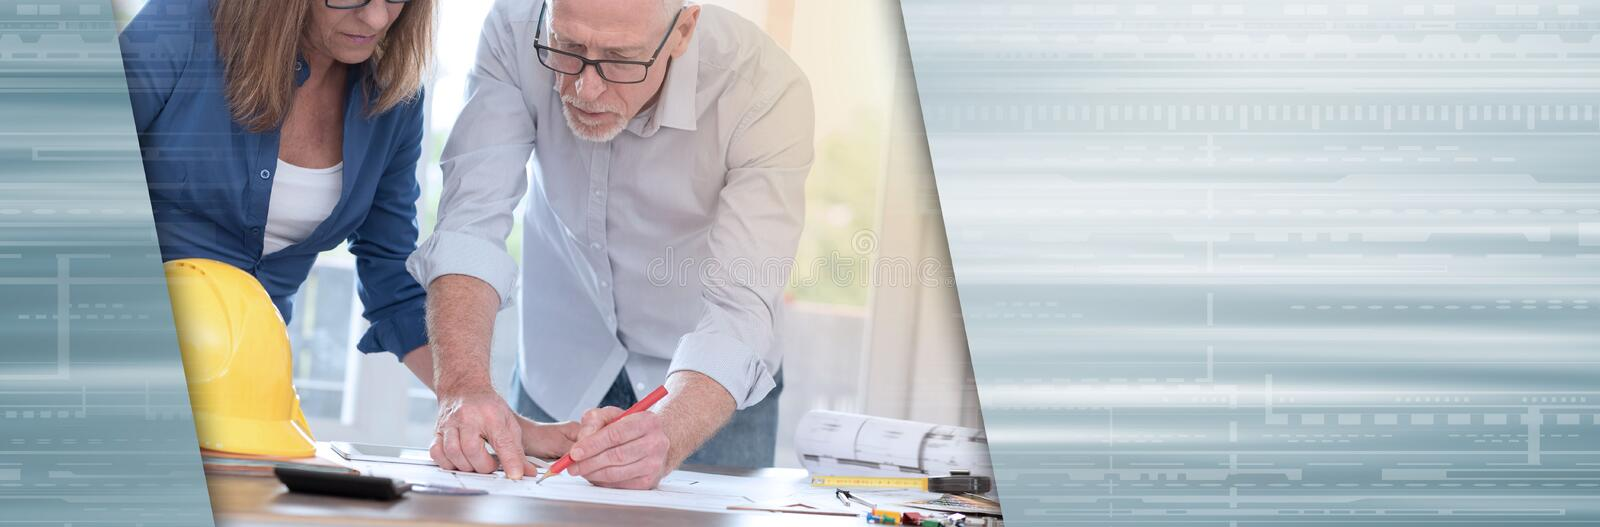 Architects working on plans, light effet; panoramic banner stock images